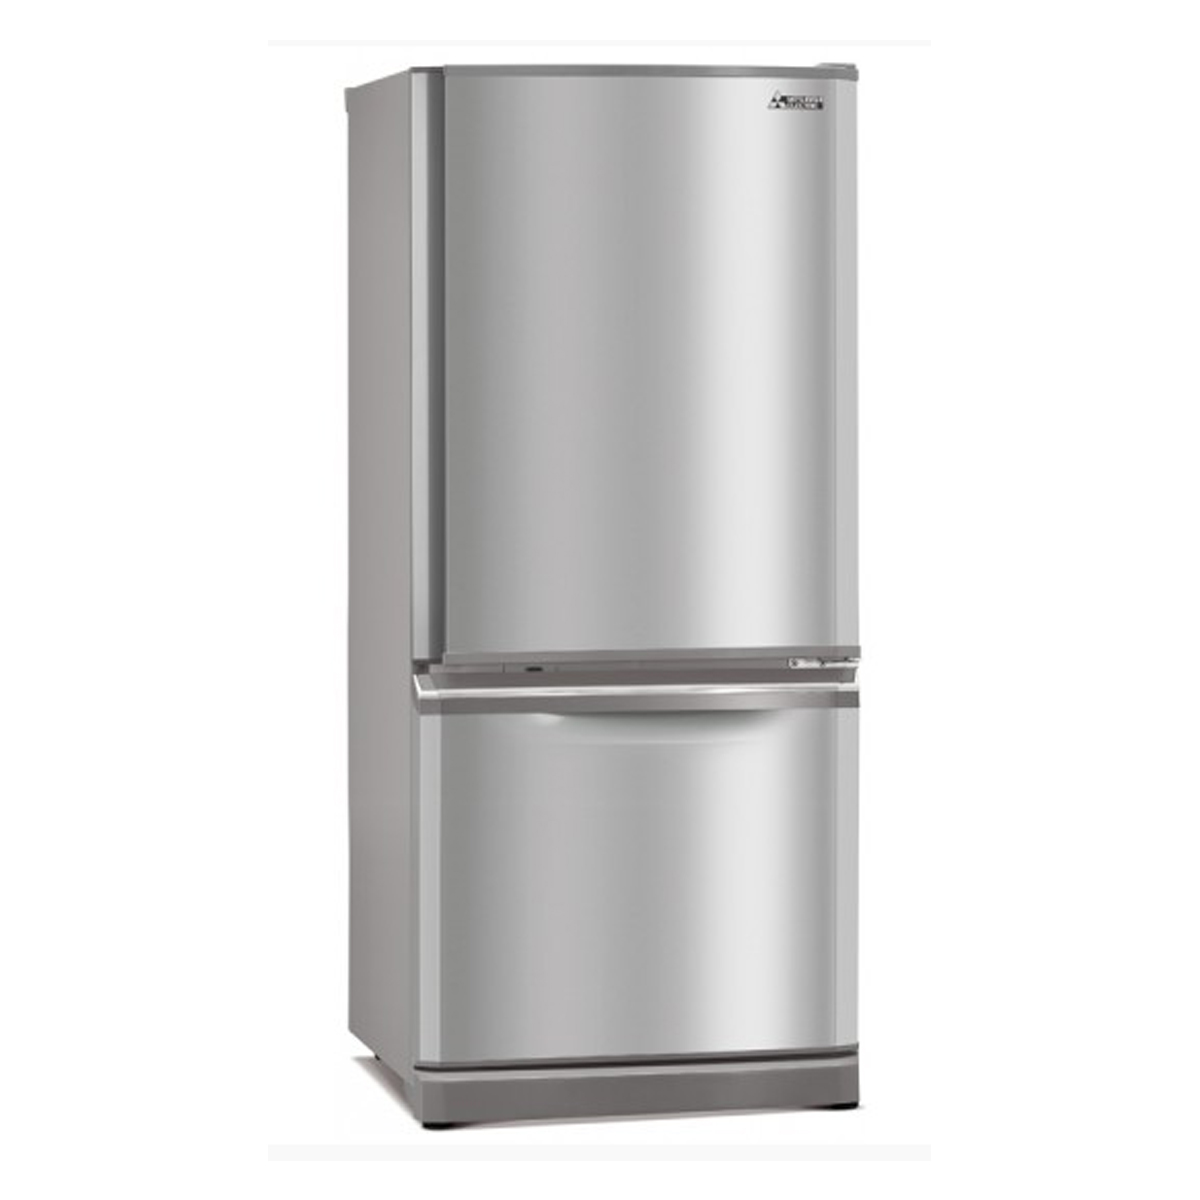 Mitsubishi MR-BF390C-ST-A 390 Litre Stainless Steel Bottom Mount Fridge 63418